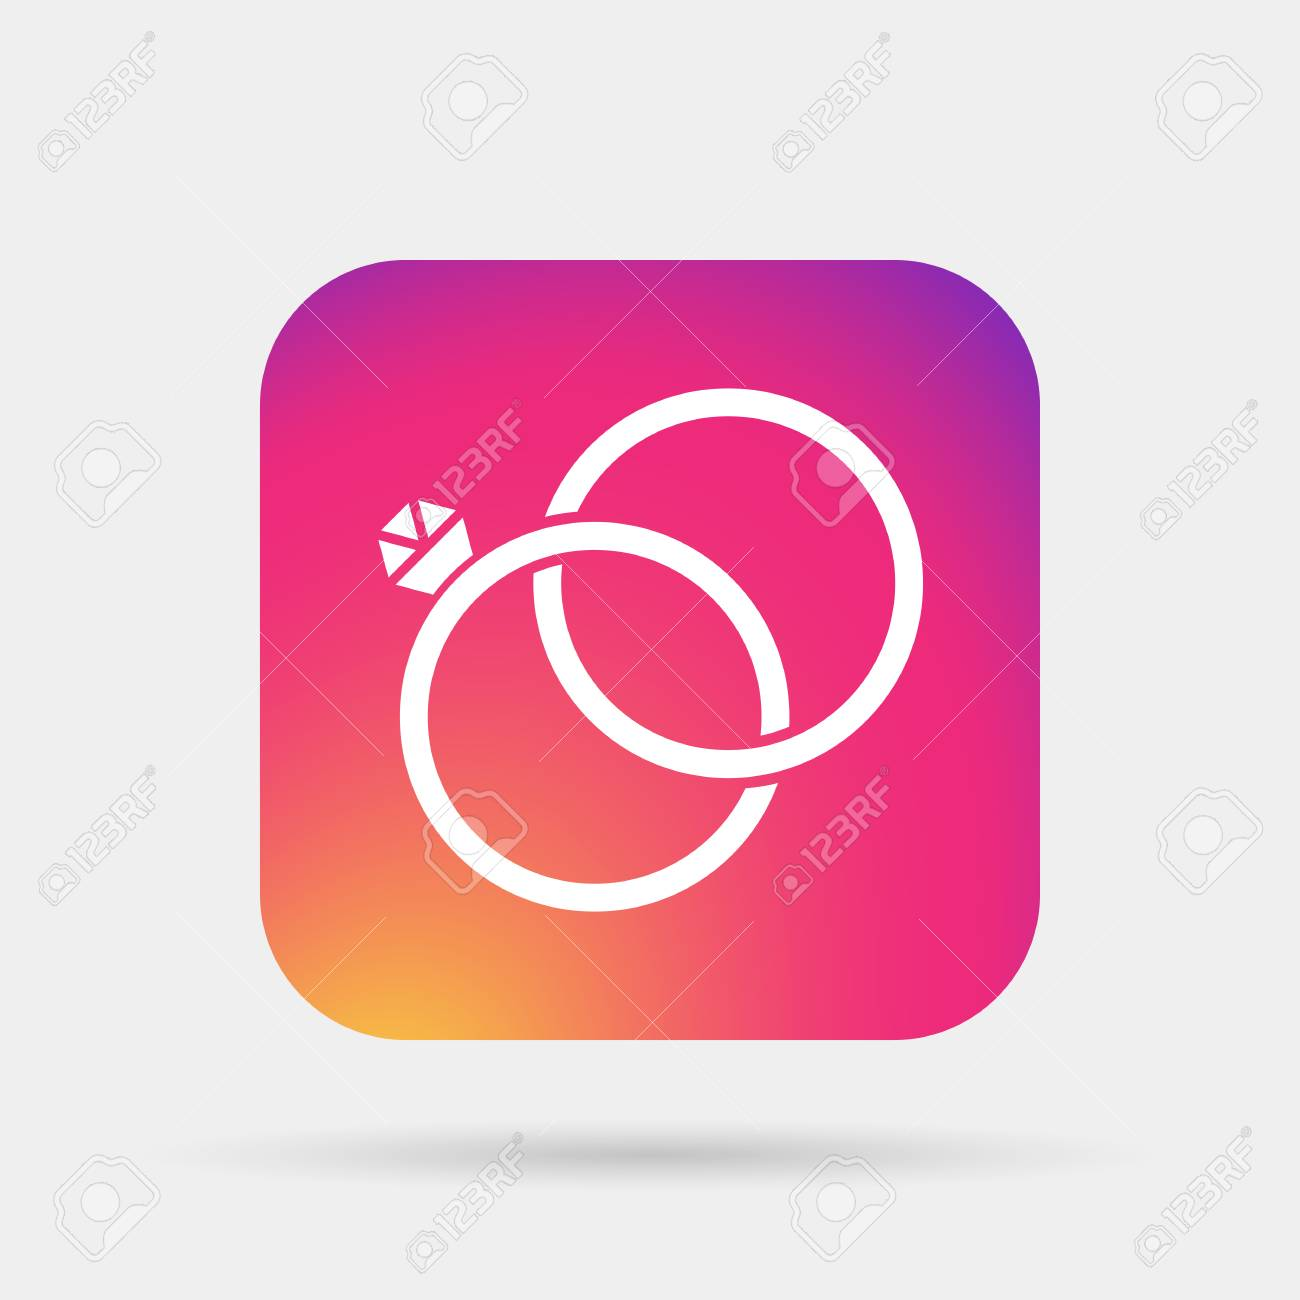 Wedding Rings Icon Royalty Free Cliparts, Vectors, And Stock ...